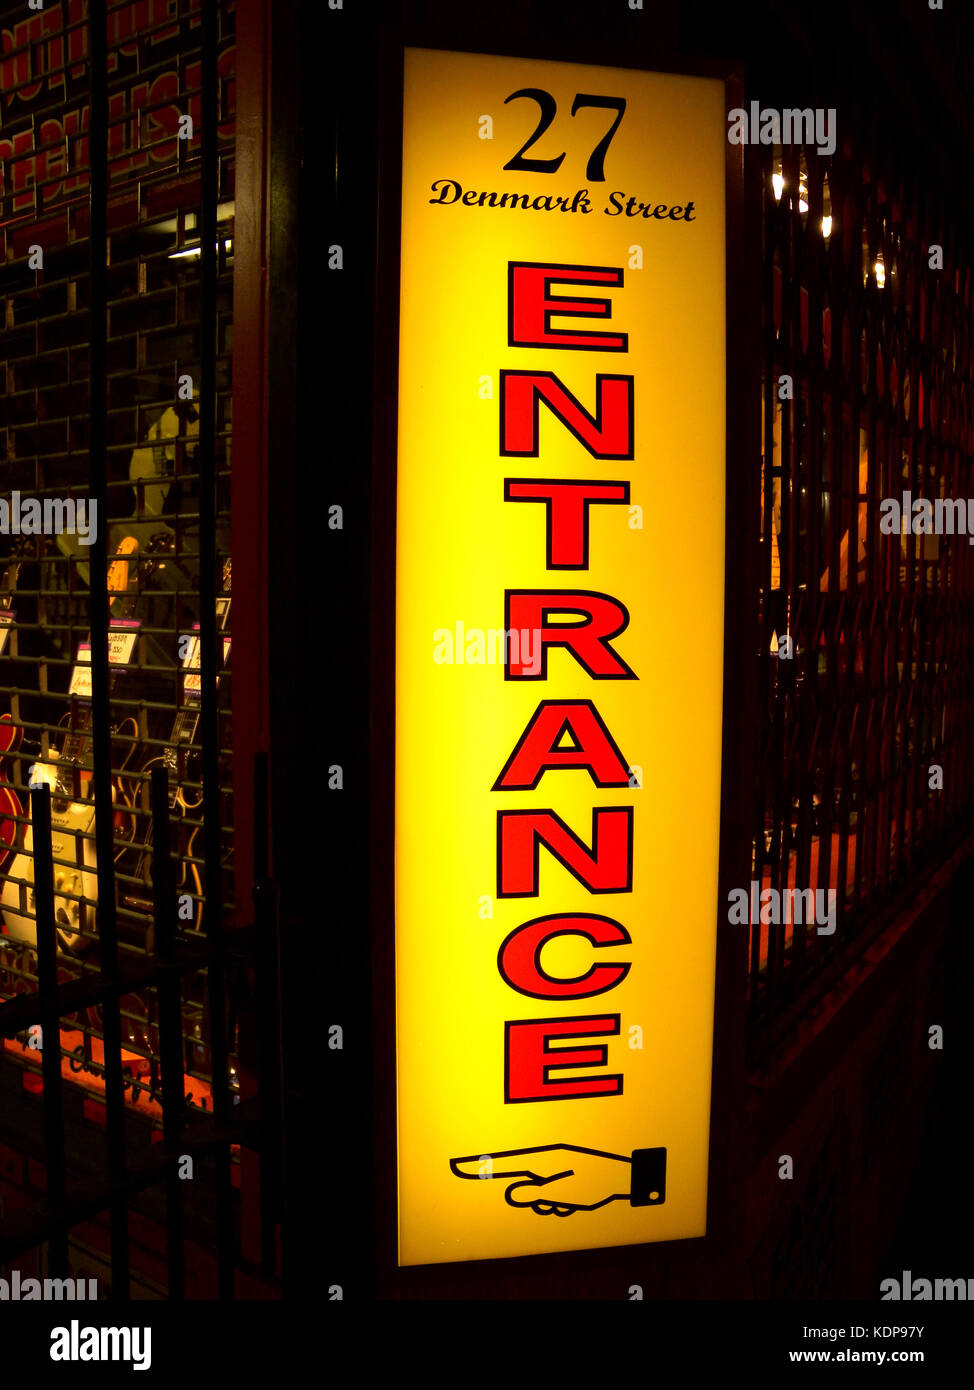 1997, night-time and the close-up picture shows the brightly coloured red and yellow neon 'Entrance' sign - Stock Image